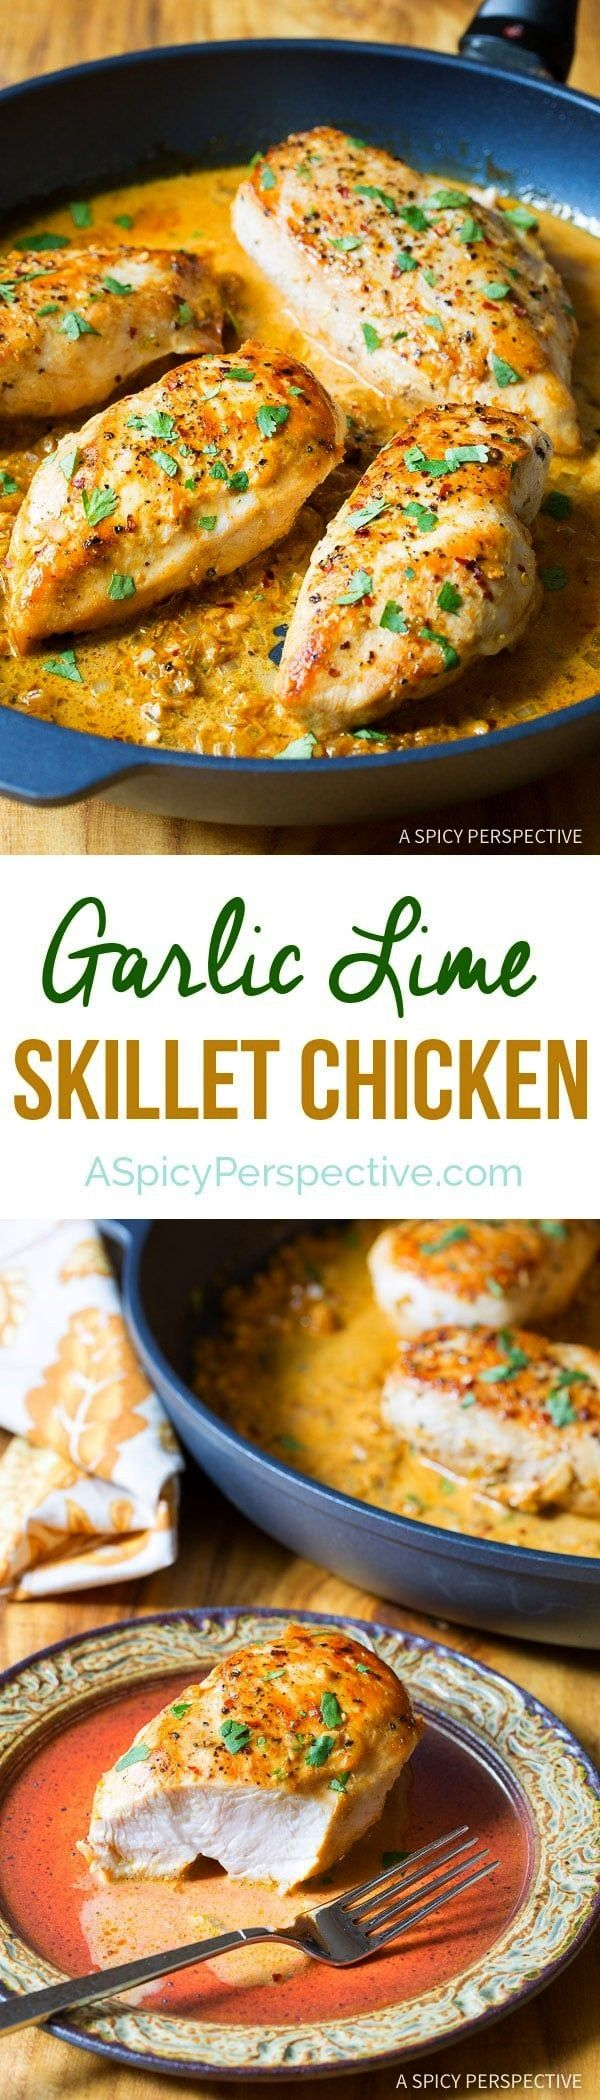 Lime Skillet Chicken Recipe: An easy dinner for any night of the week. Fresh simple ingredients and